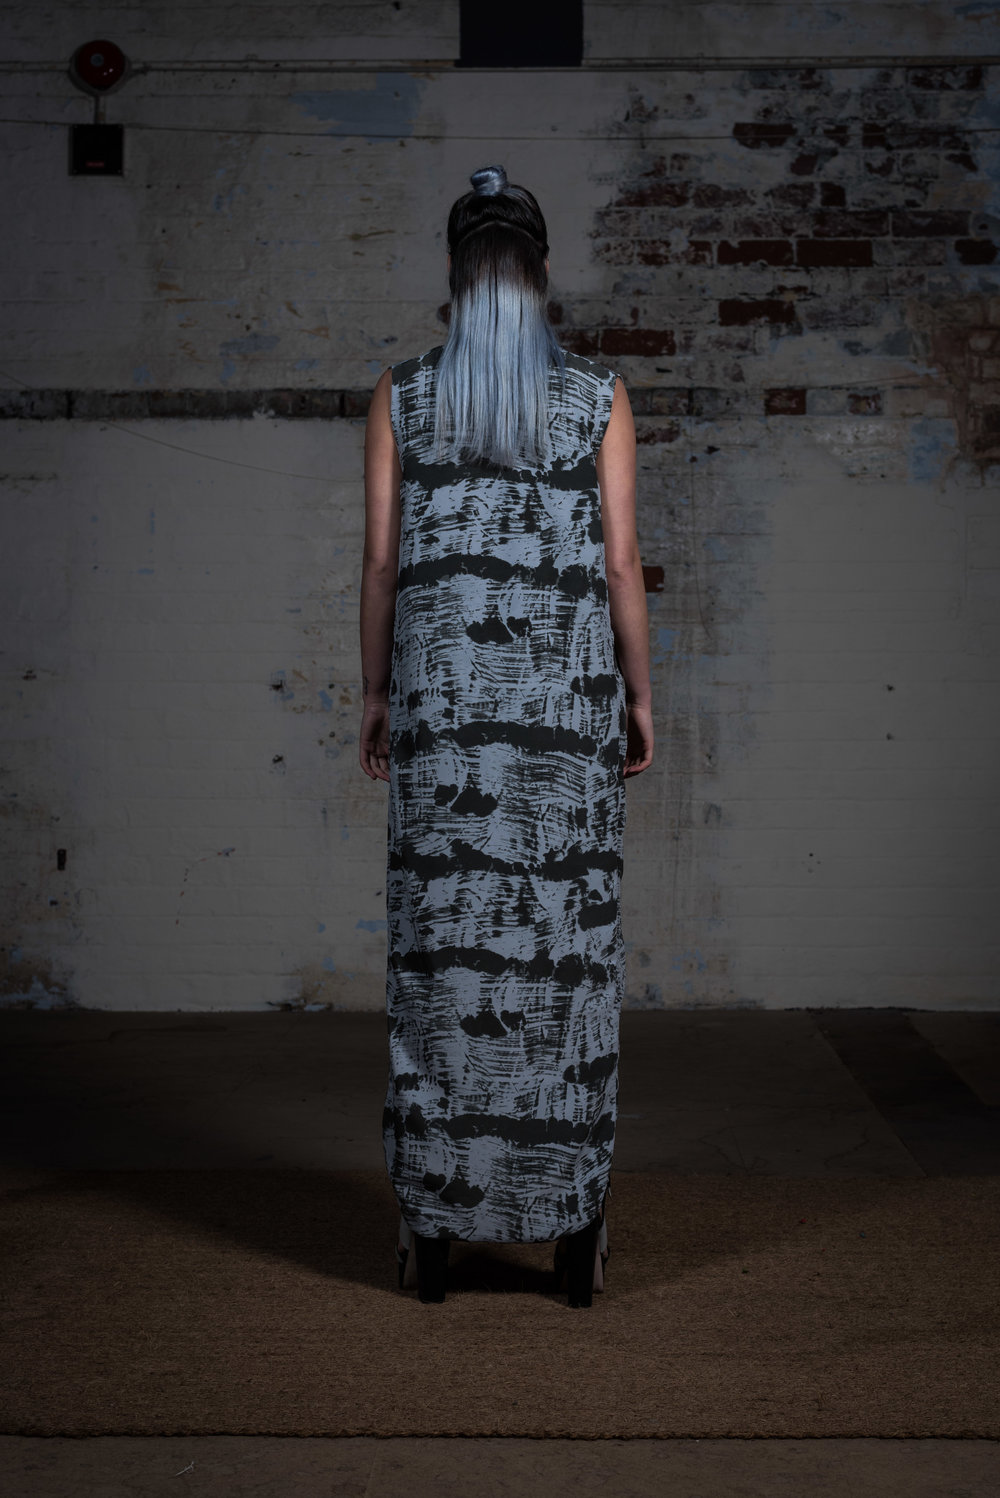 zaramia-ava-zaramiaava-leeds-fashion-designer-ethical-sustainable-sora-maxi-minimalist-print-dress-versatile-drape-skirt-grey-yuko-cowl-dress-styling-location-womenswear-models-photoshoot-18